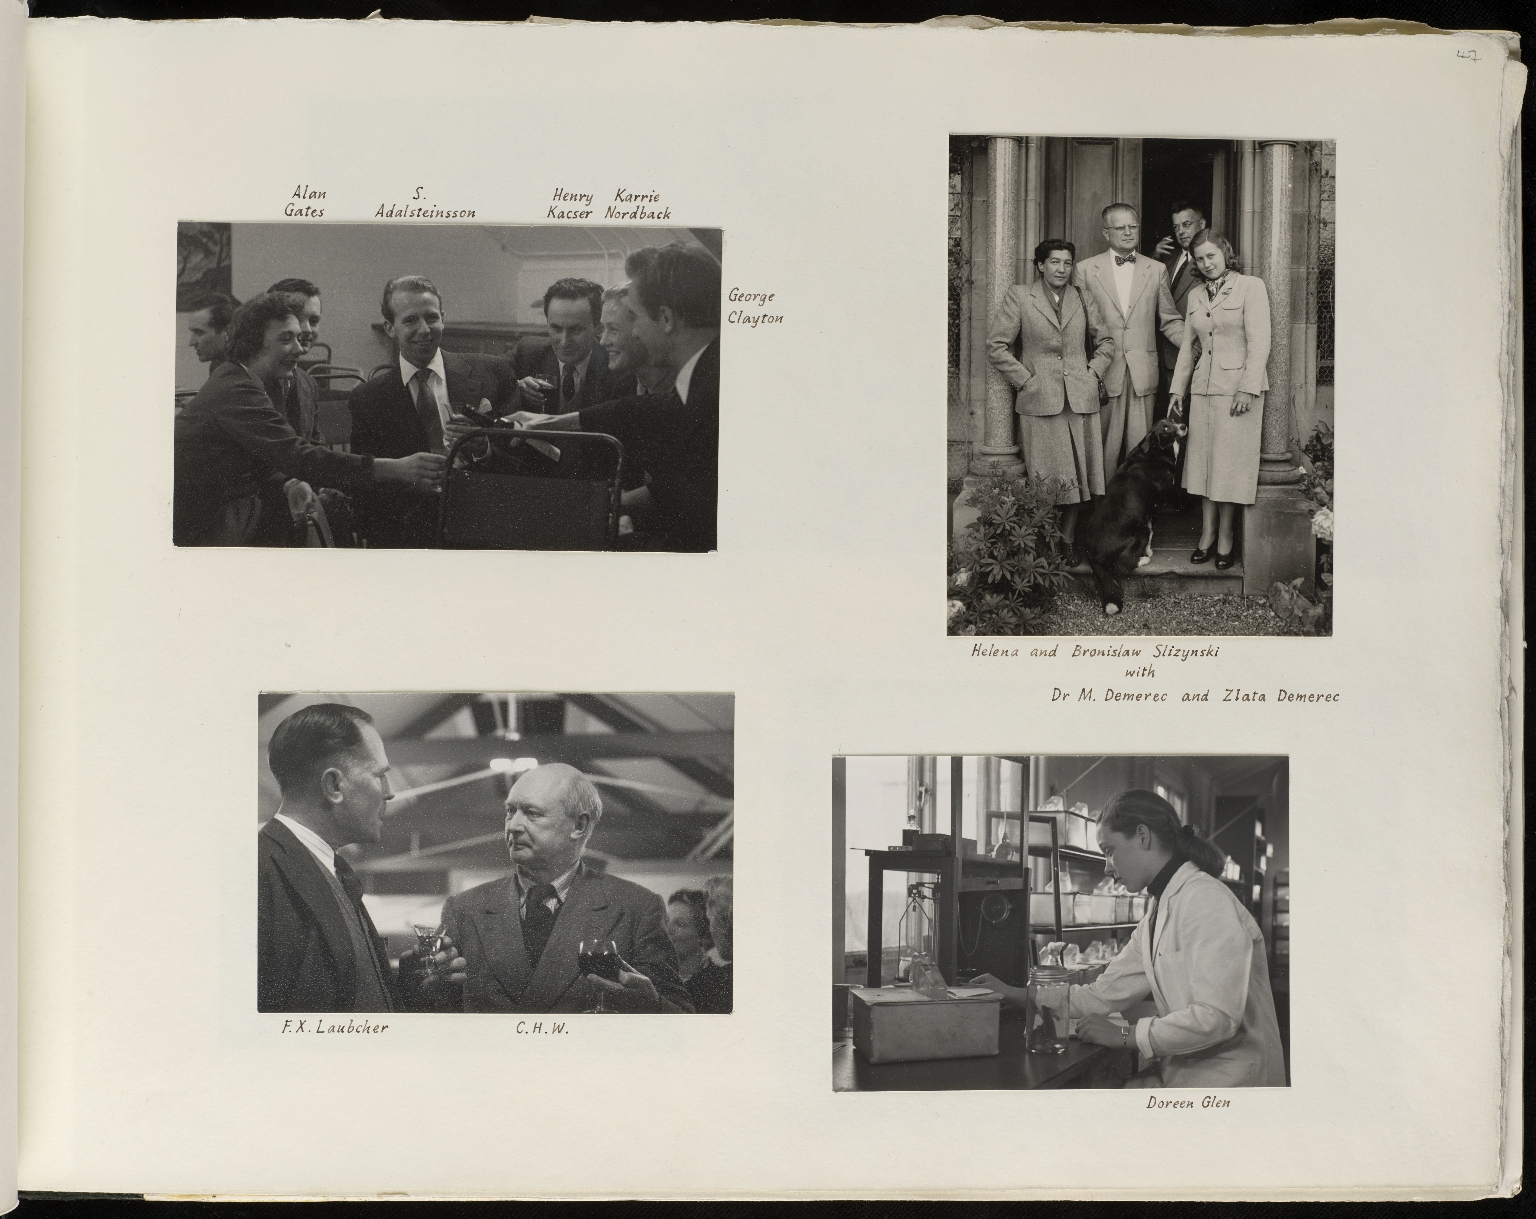 Photograph album presented to Waddington by Institute of Animal Genetics staff on his 50th birthday, p.47